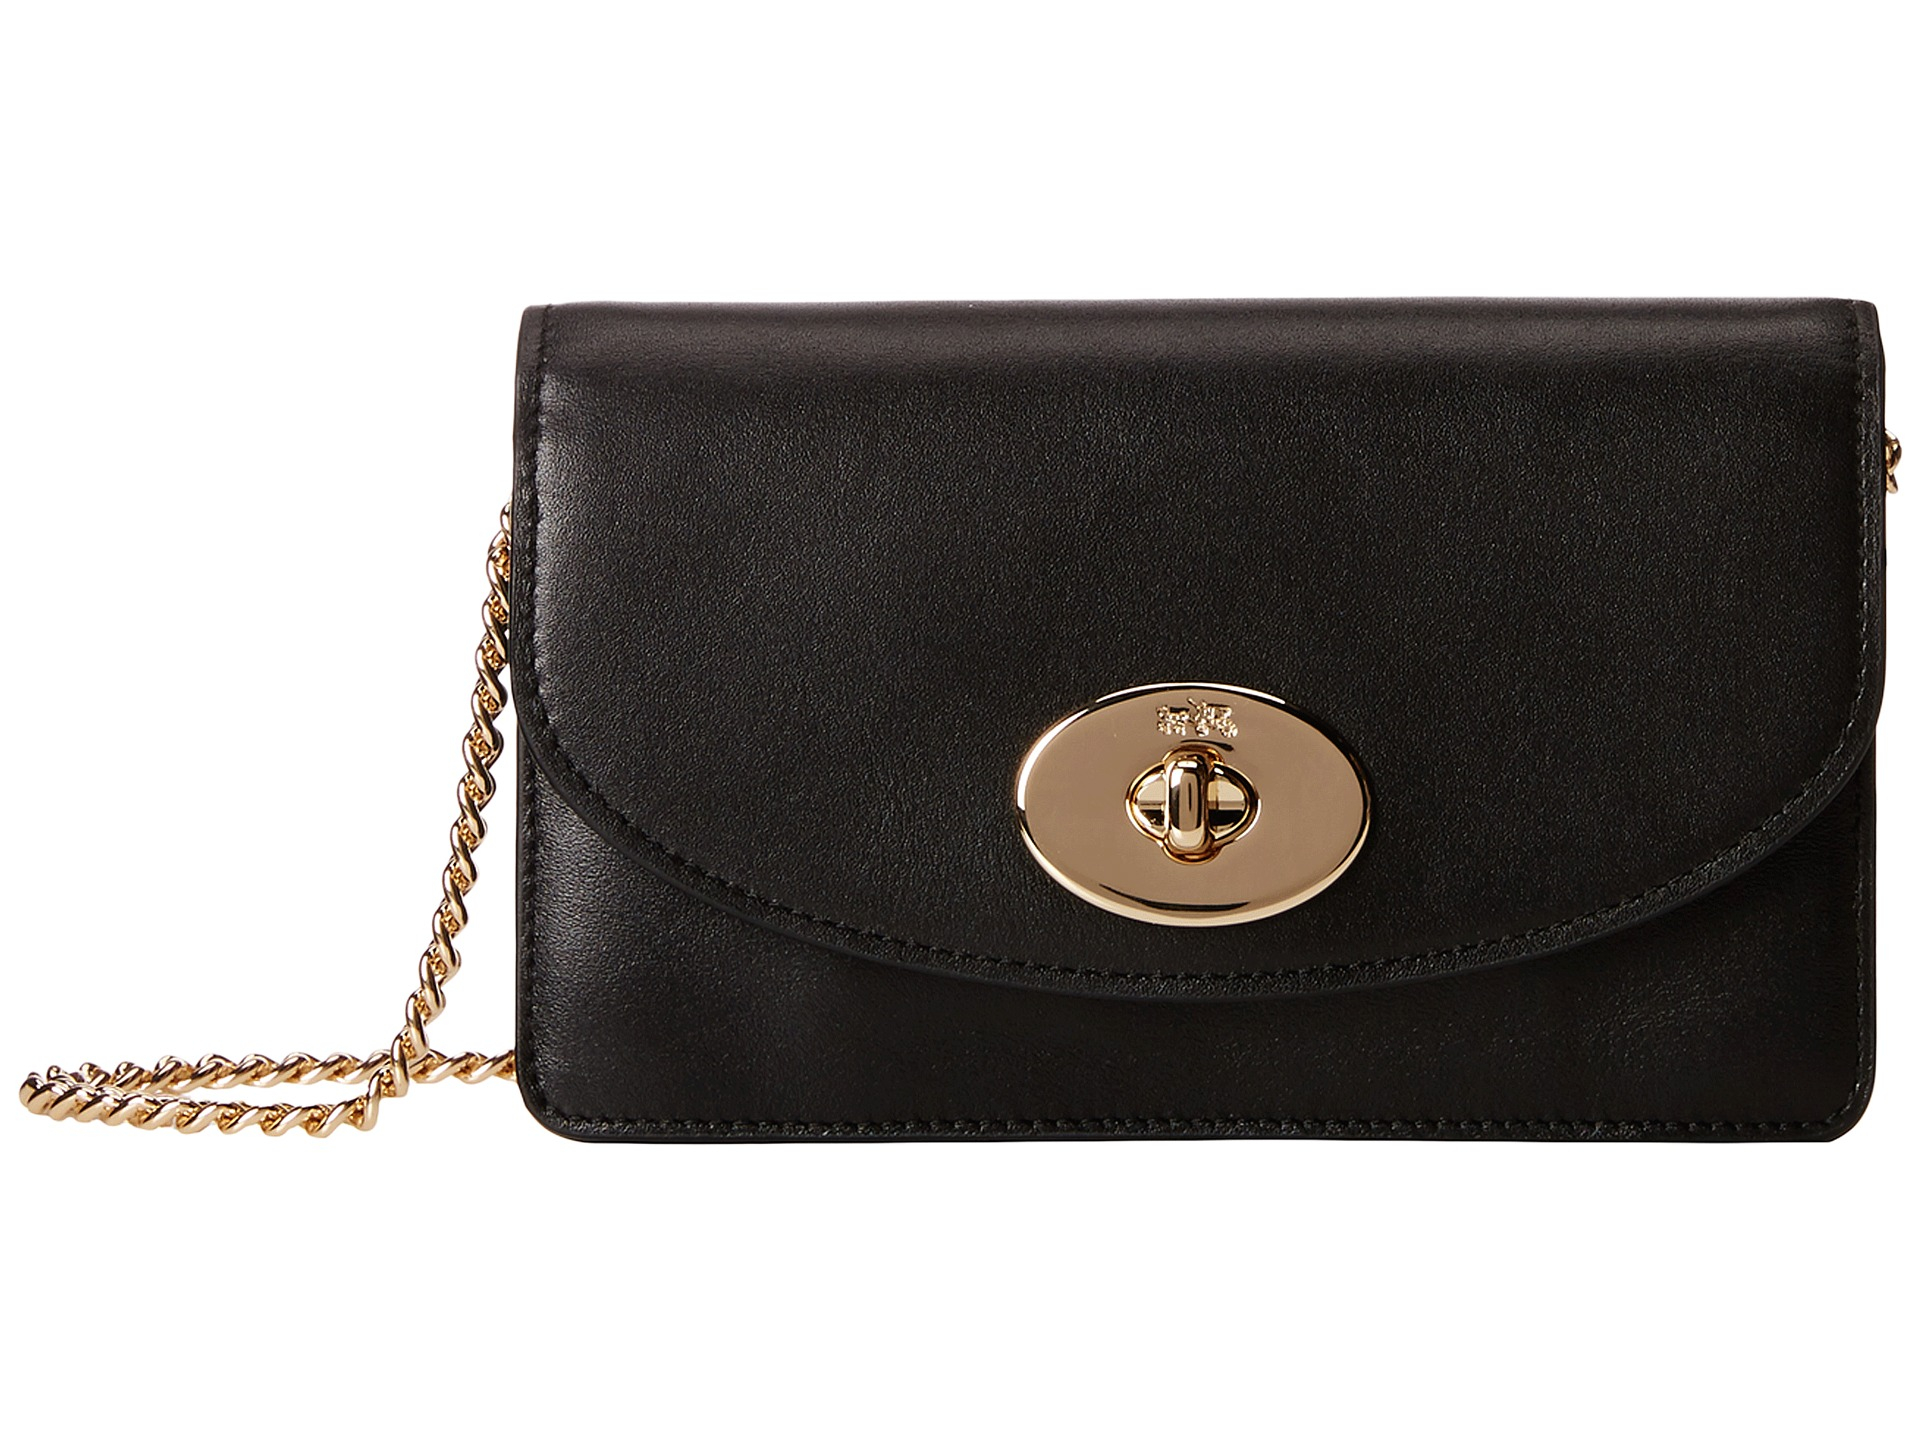 2b799cc8cd103 ... low cost lyst coach smooth leather clutch chain wallet in black e6ddd  01a70